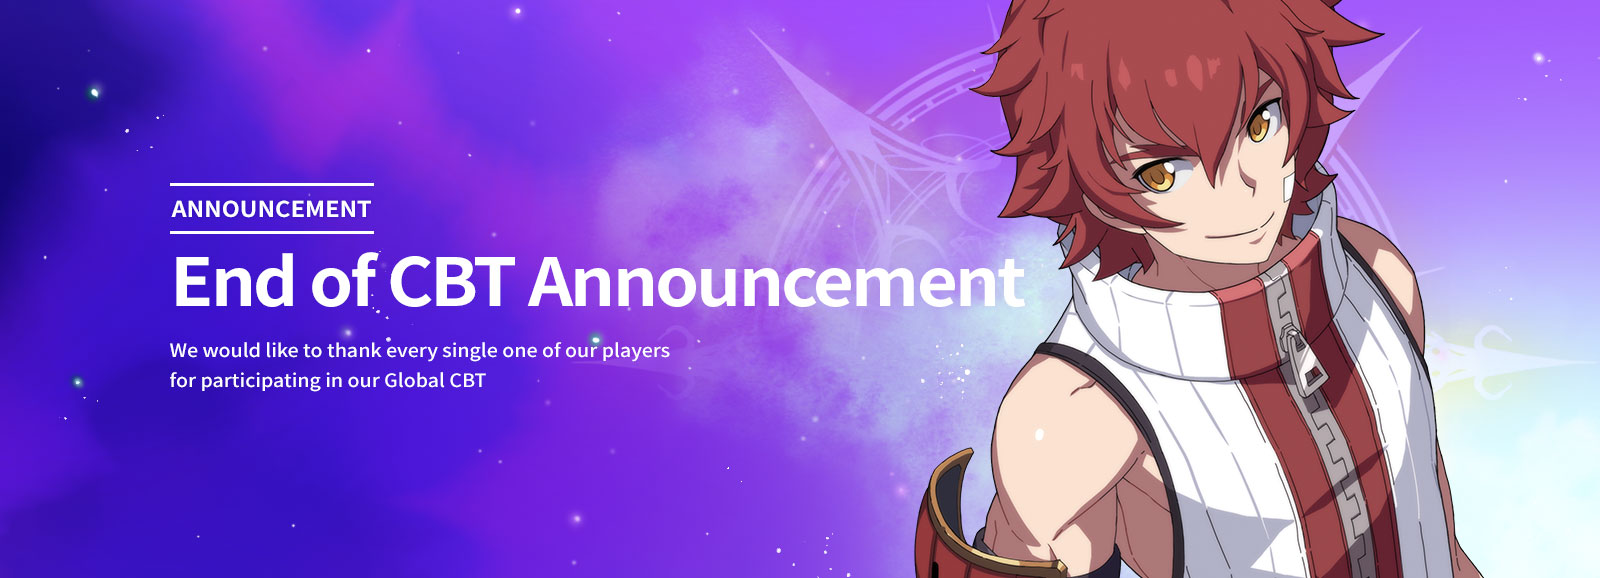 End of CBT Announcement